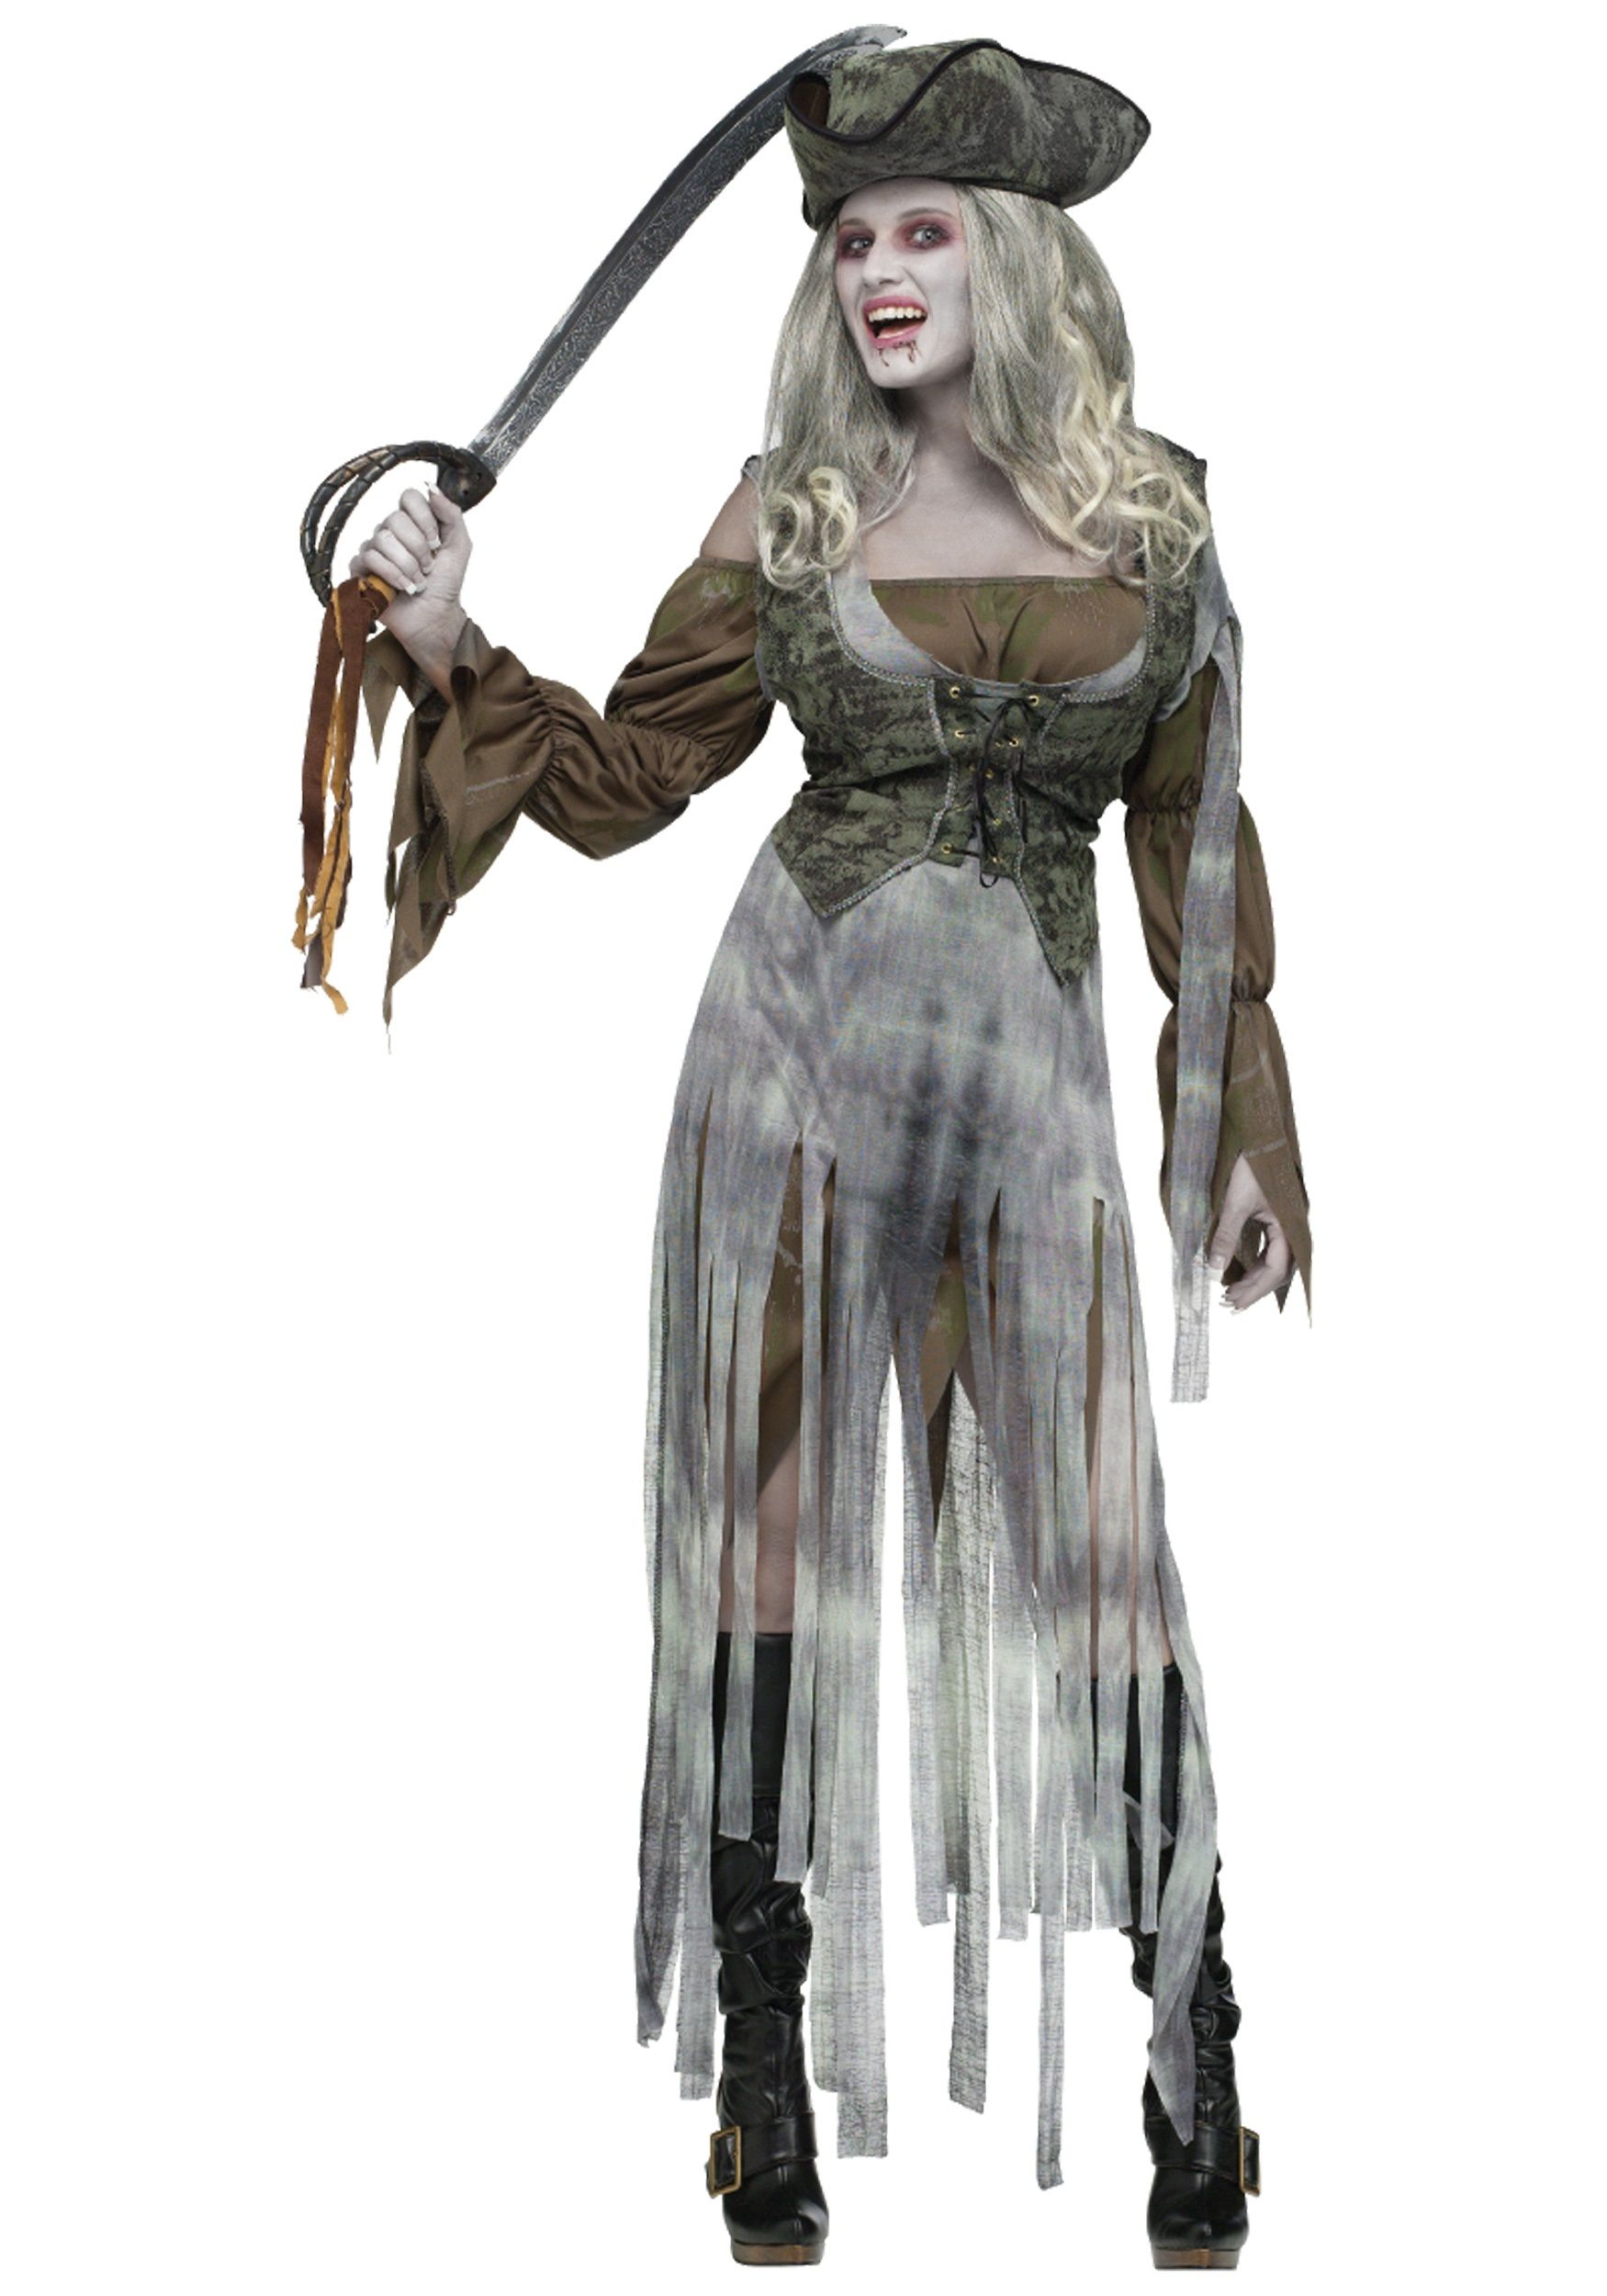 Ladies Pirate Fancy Dress Costume Outfit Caribbean Wench Adults Halloween Zombie